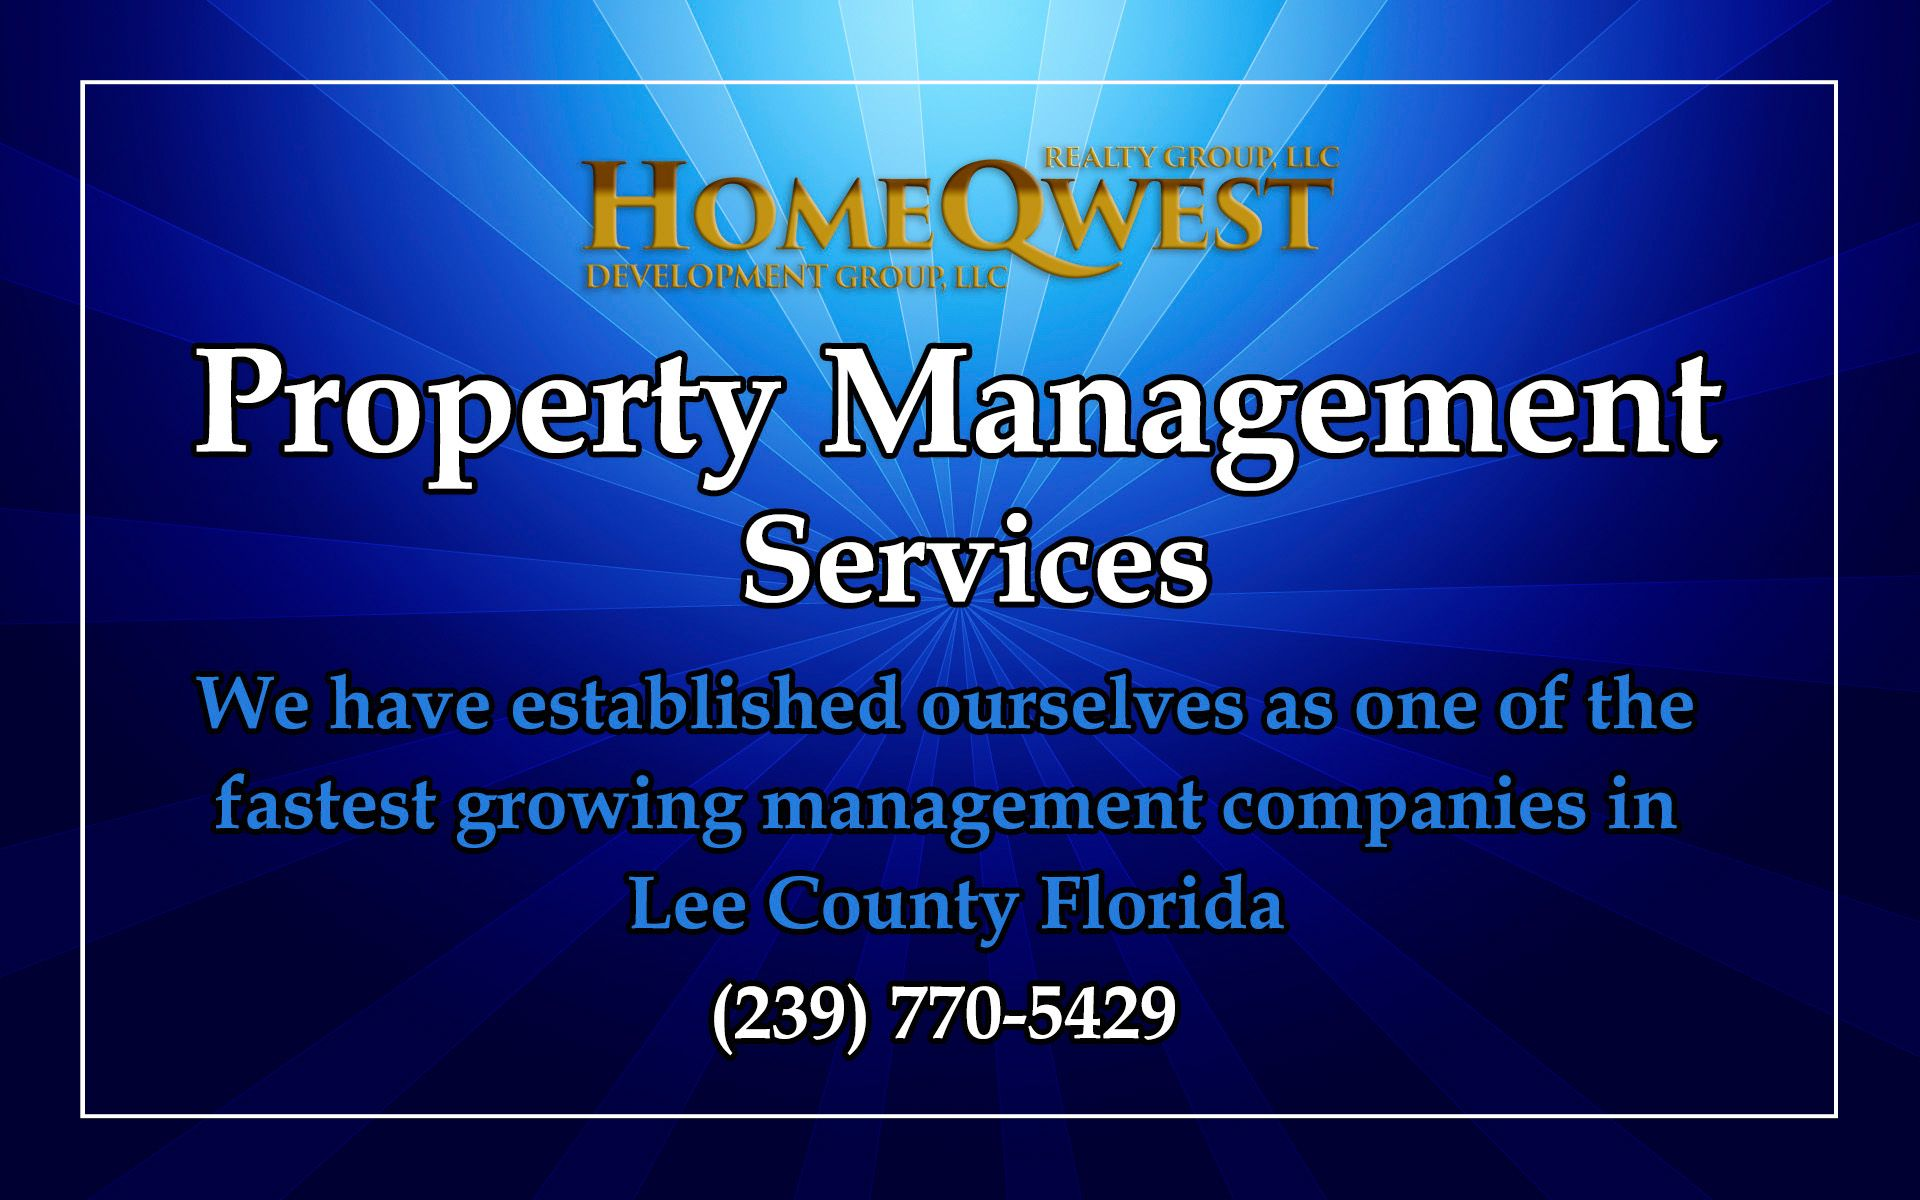 Cape Coral Fl Property Management Services Attention Landlords Welcome To Homeqwest Realty Group Llc Proper Property Management Being A Landlord Management